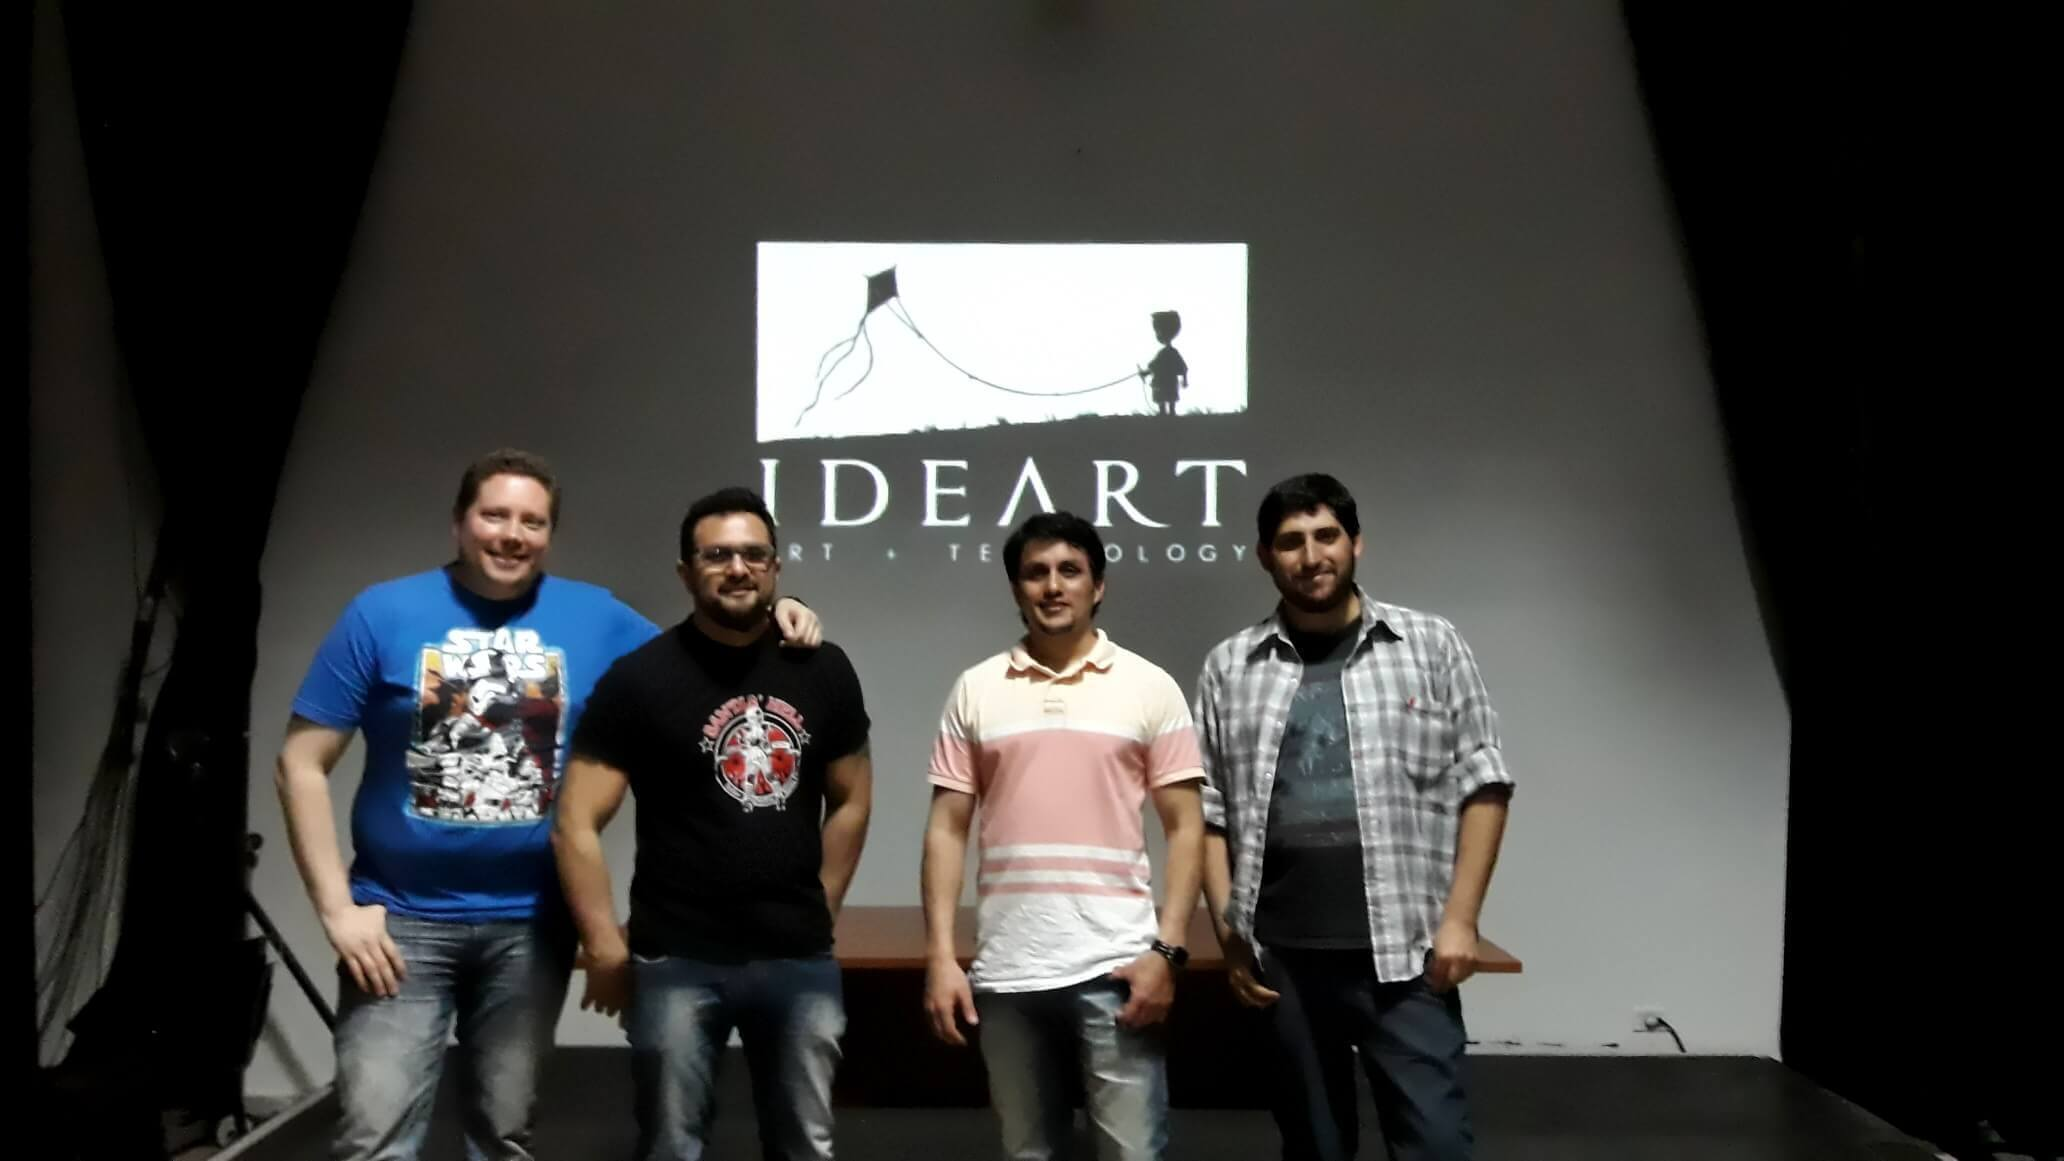 Speaker and organizers of the ideart talk.